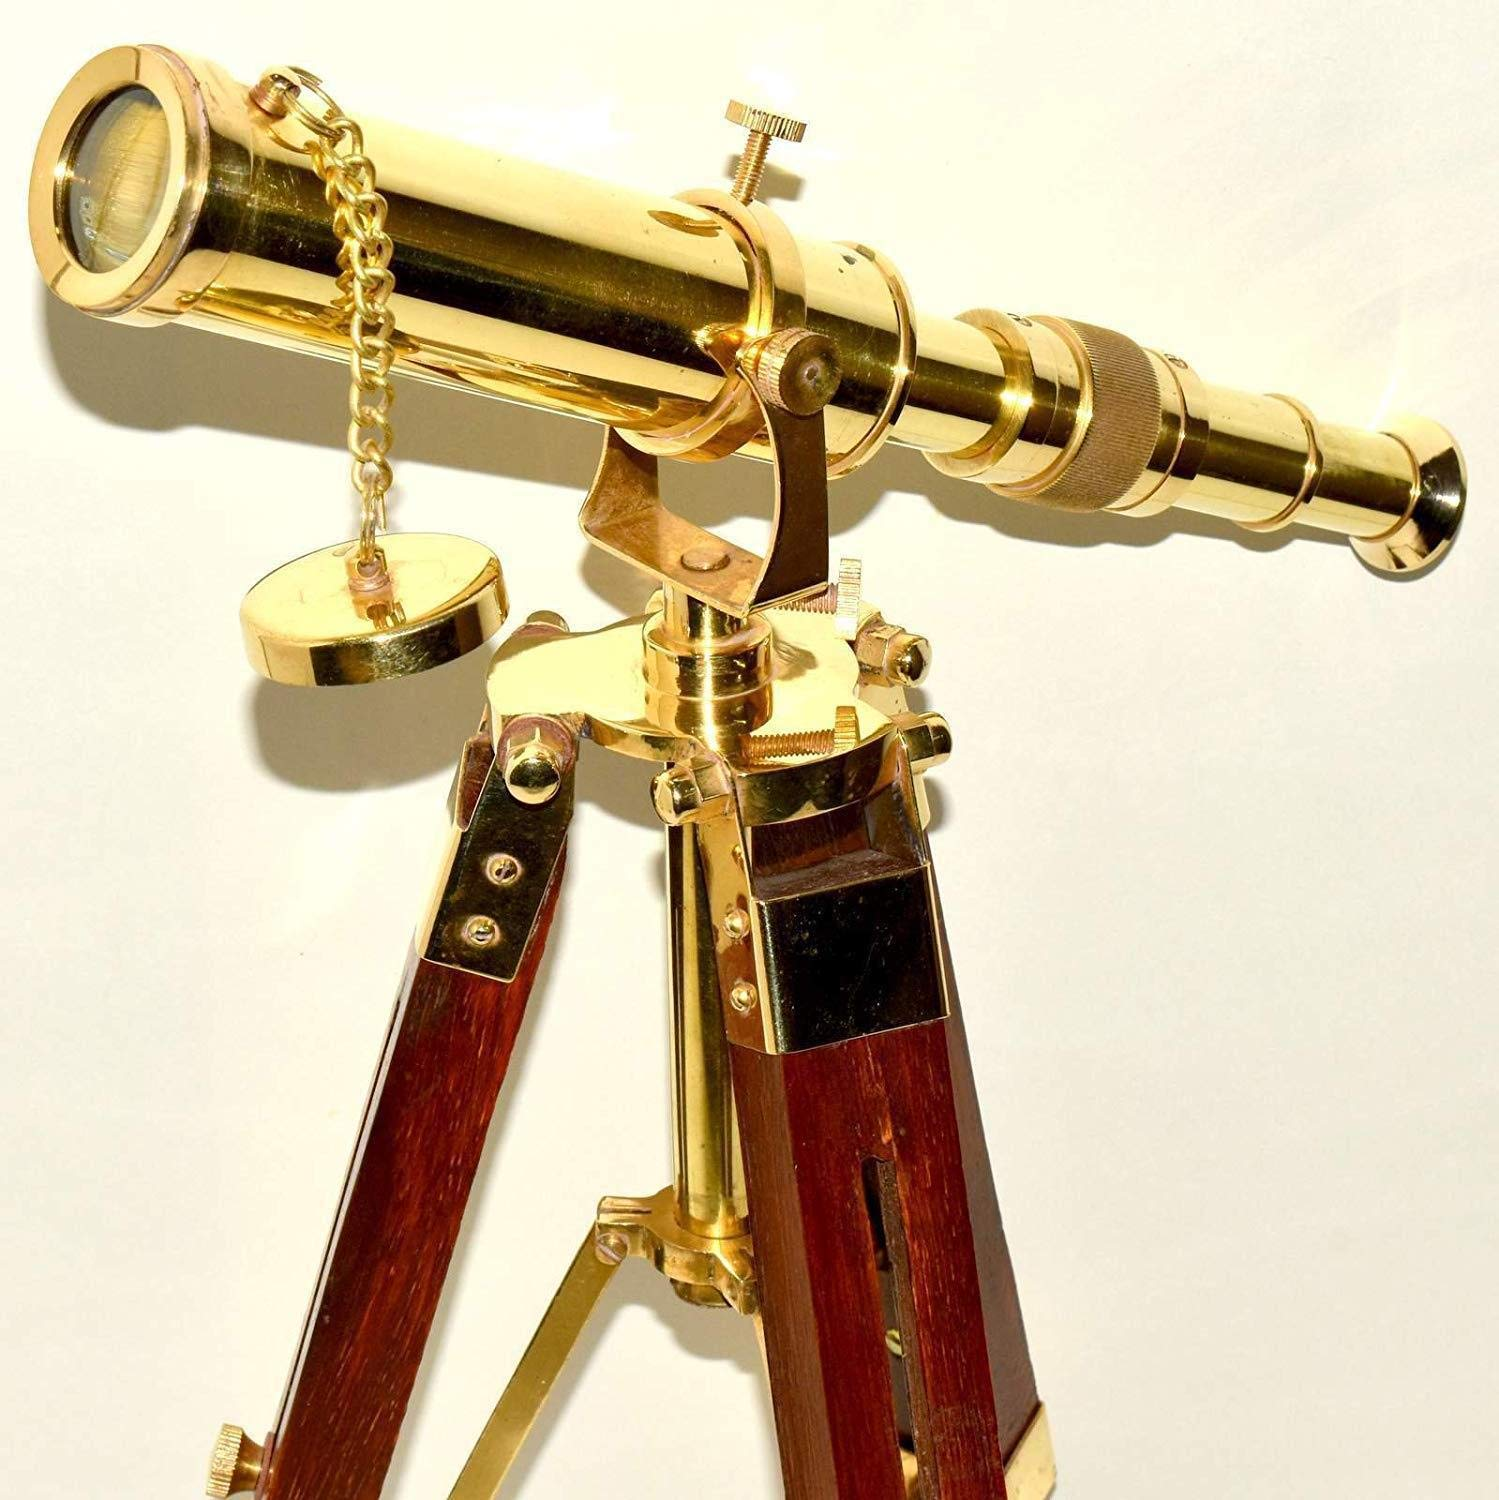 Arsh Nautical Vintage Decorative Solid Brass Antique Nautical Telescope with Wooden Tripod